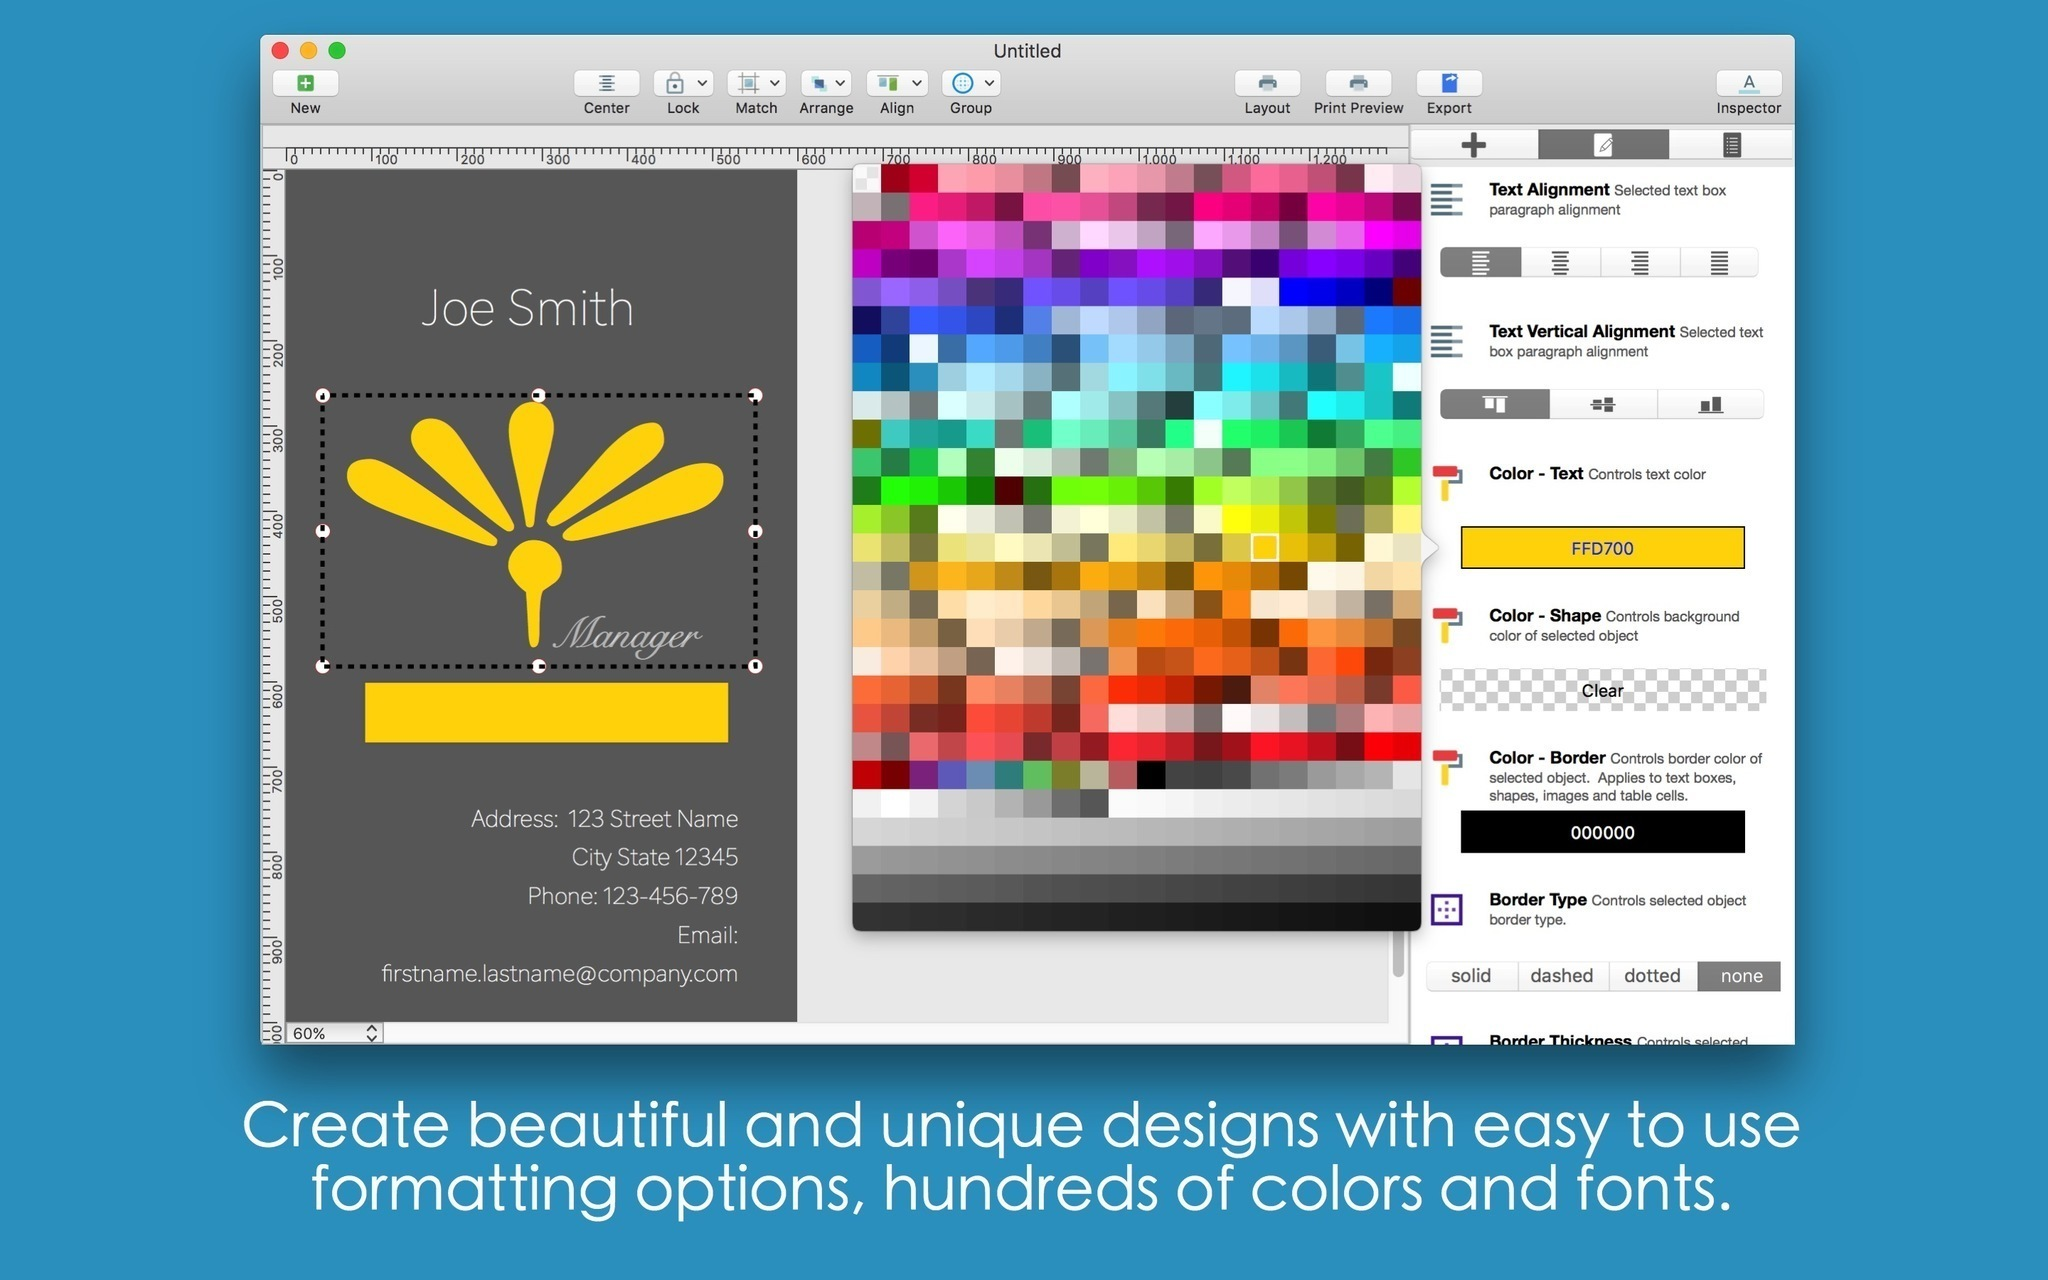 Business card designer free download and software oukasfo tagsgreeting card designer free download and softwarebusiness card software nch software download freedownload business card designer plus 12060business reheart Image collections